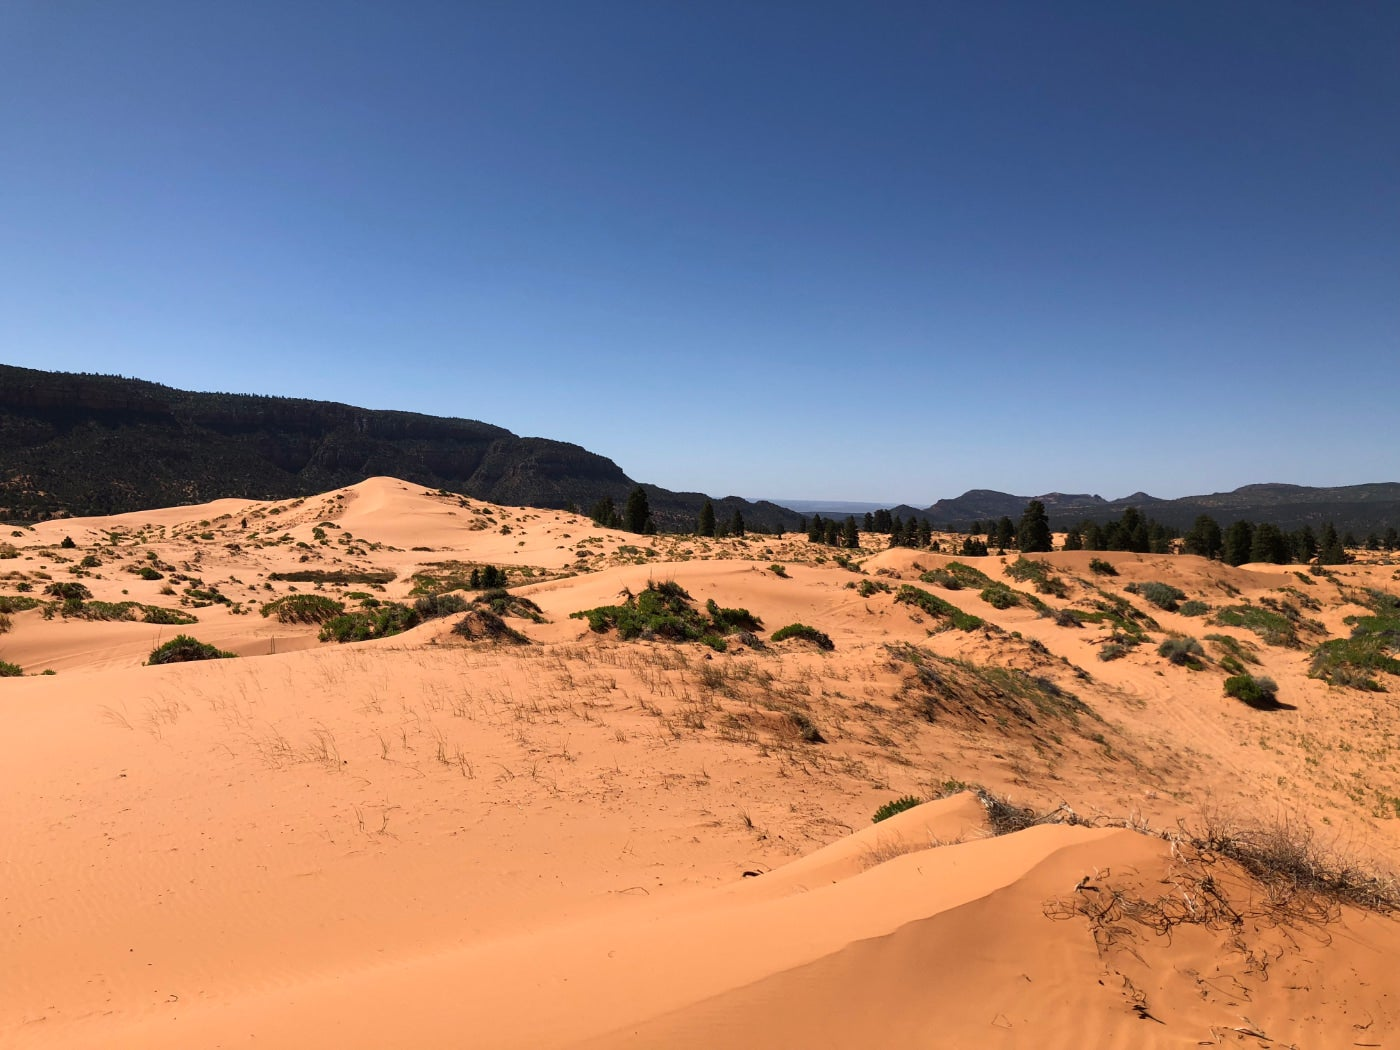 Landscape of the coral pink sand dunes scattered with brush and surrounded by dark hills.